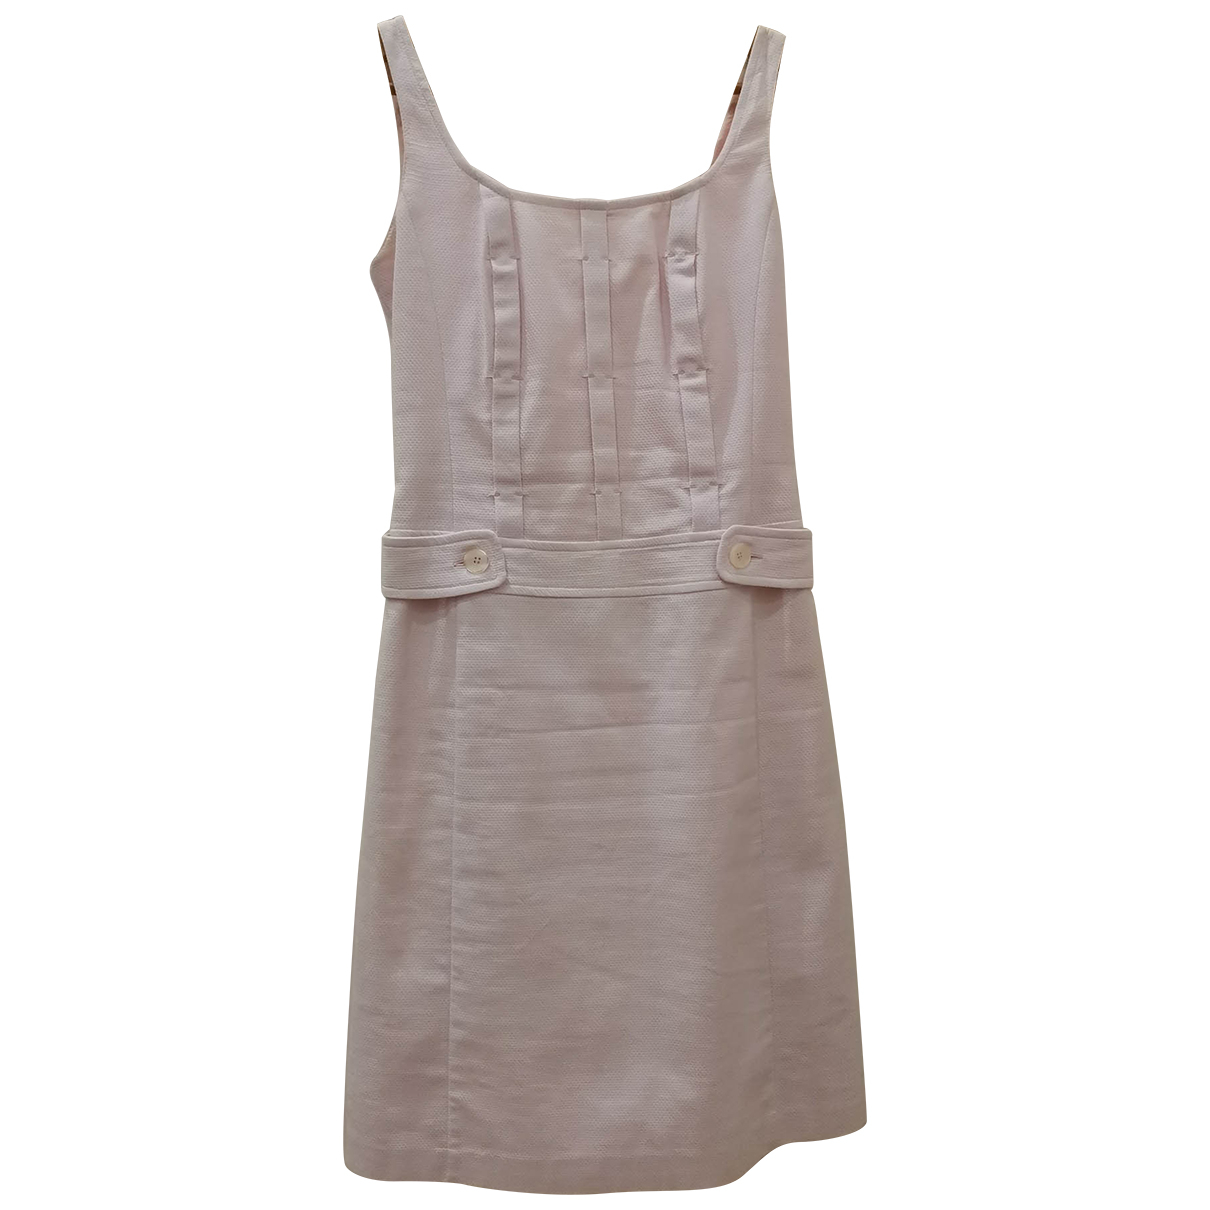 Max & Co \N Pink Cotton dress for Women 36 IT